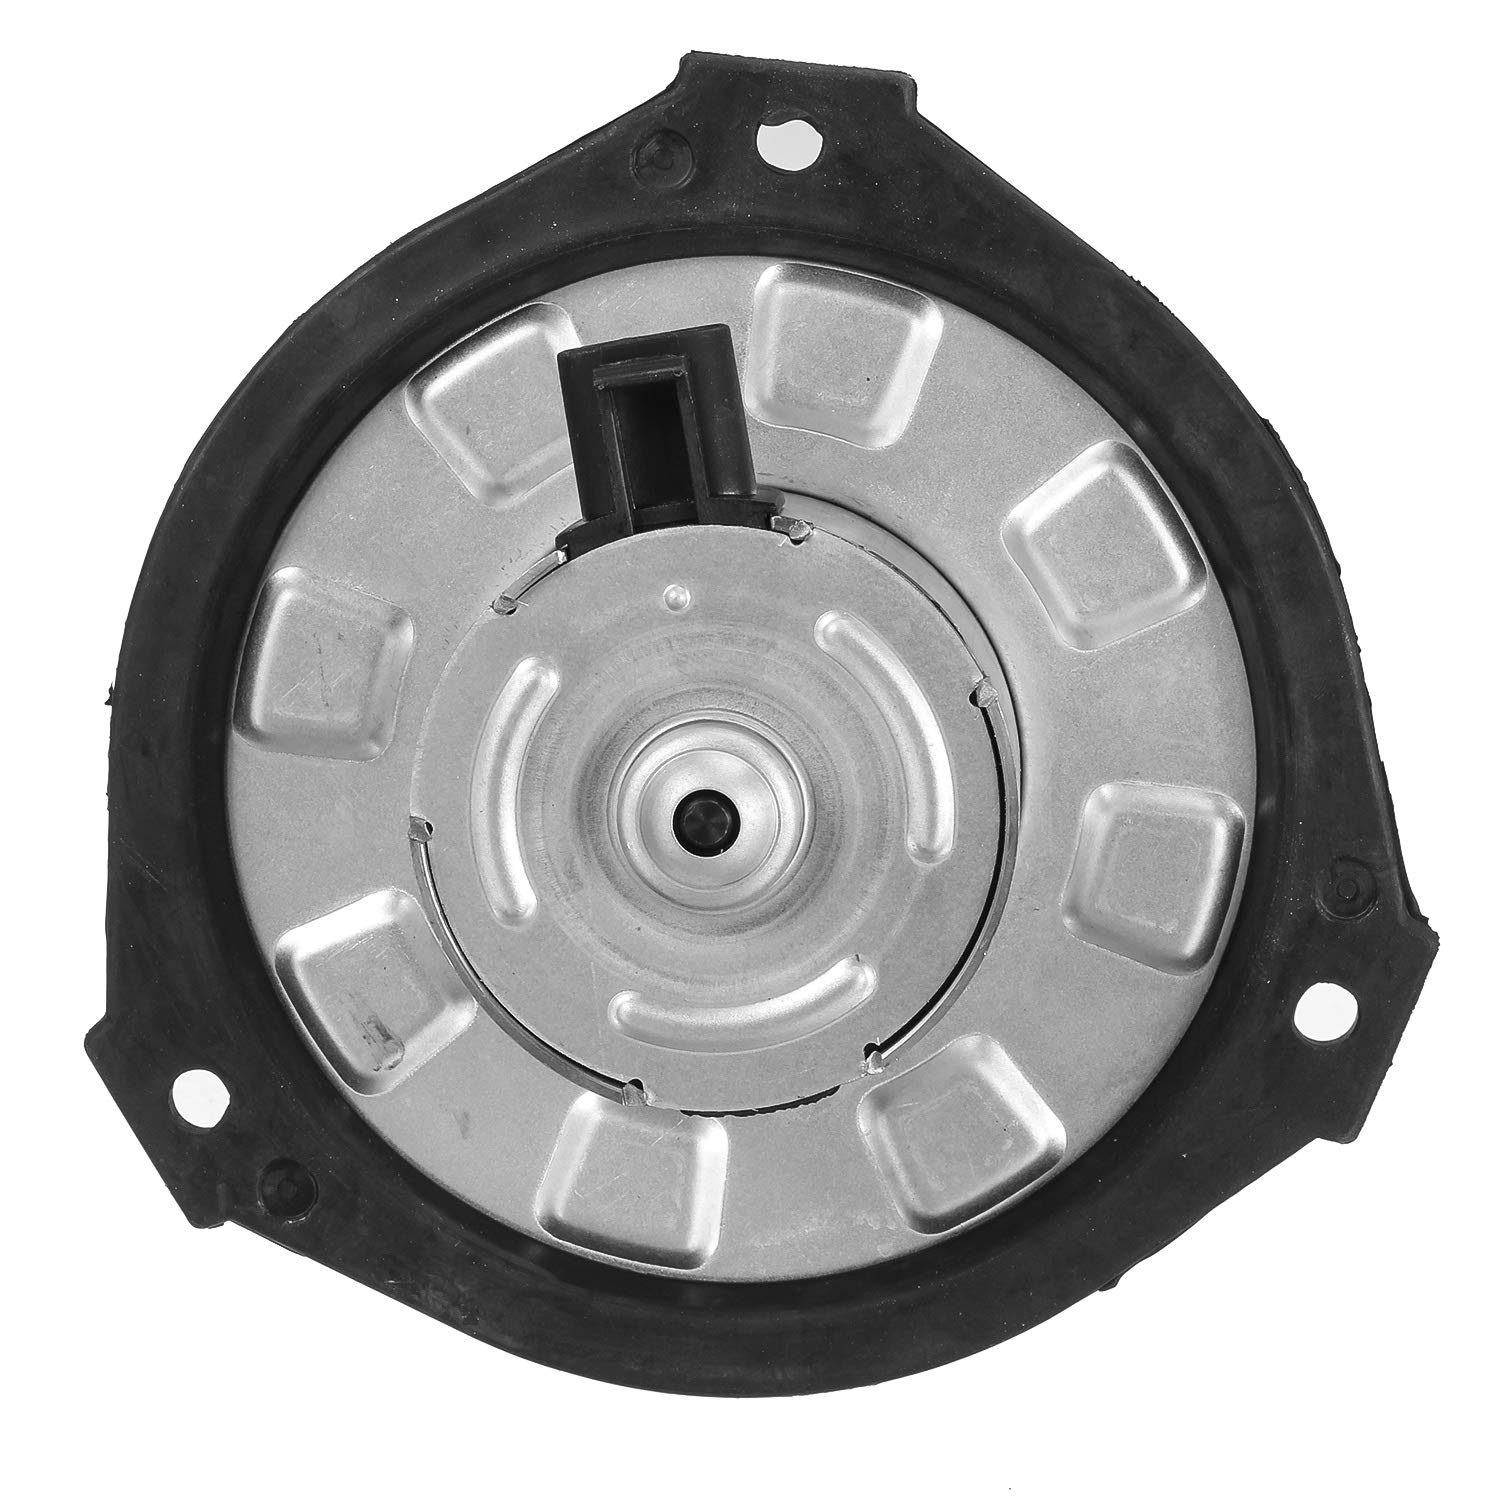 AUTEX HVAC Blower Motor Assembly 700109 52498916 89018747 Fits for